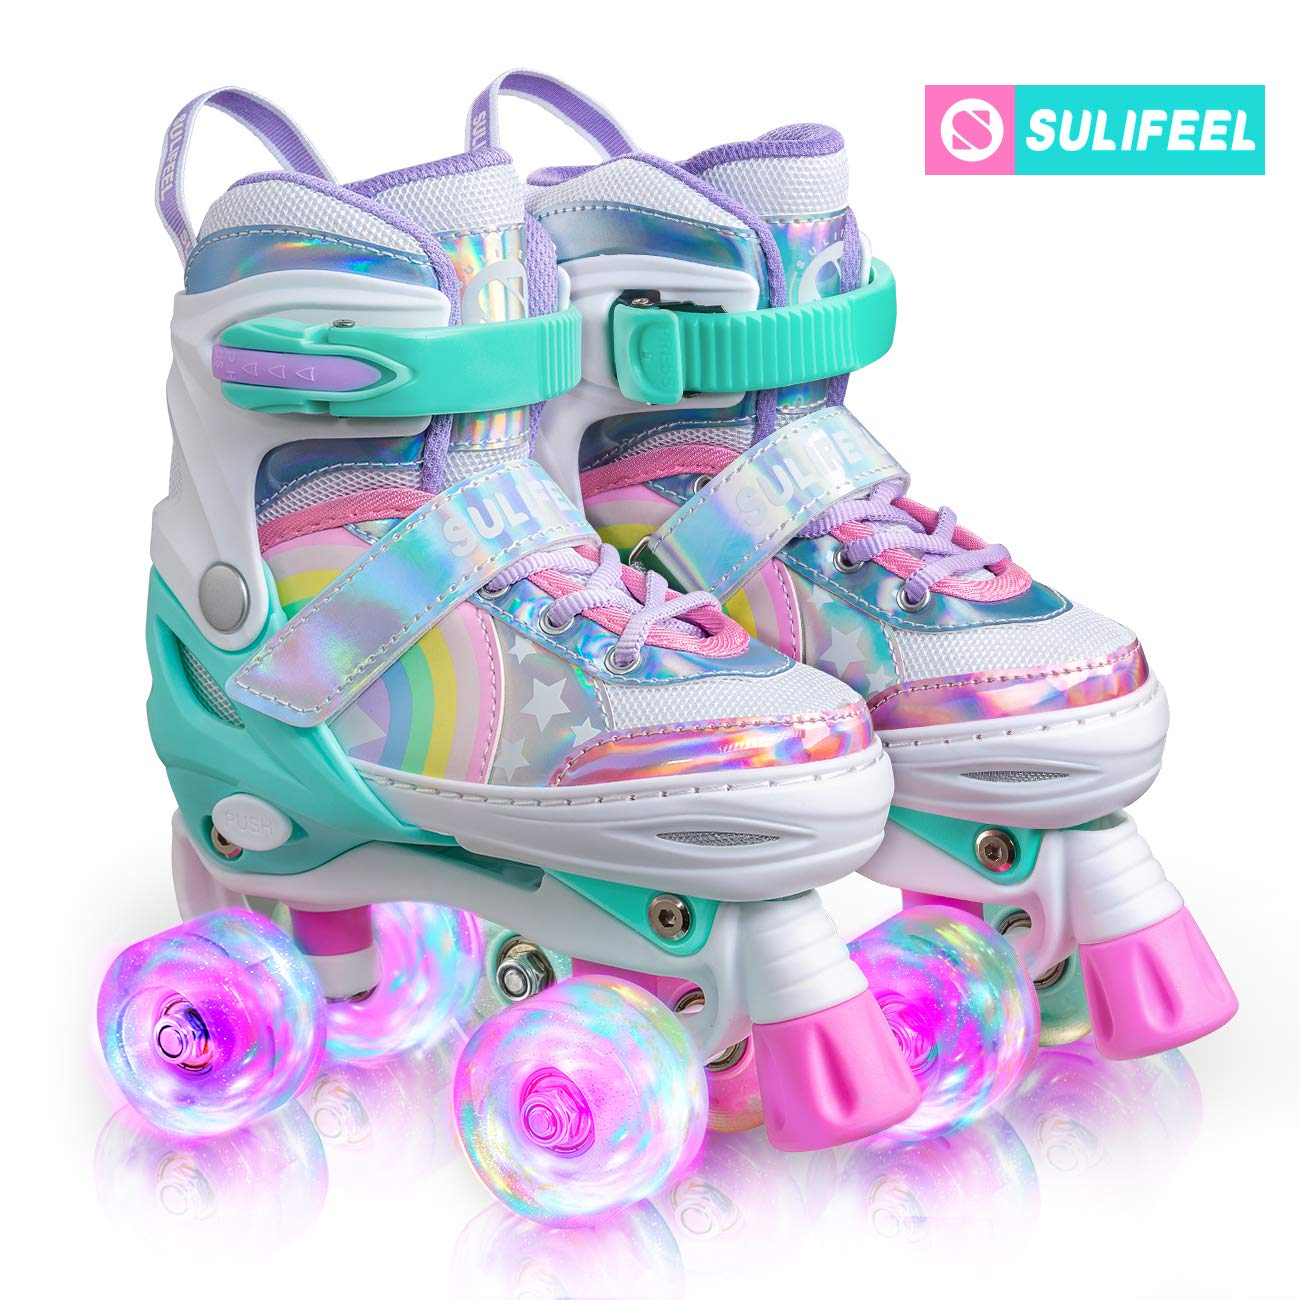 Parents Guide To Buying Roller Skates For Children 2020